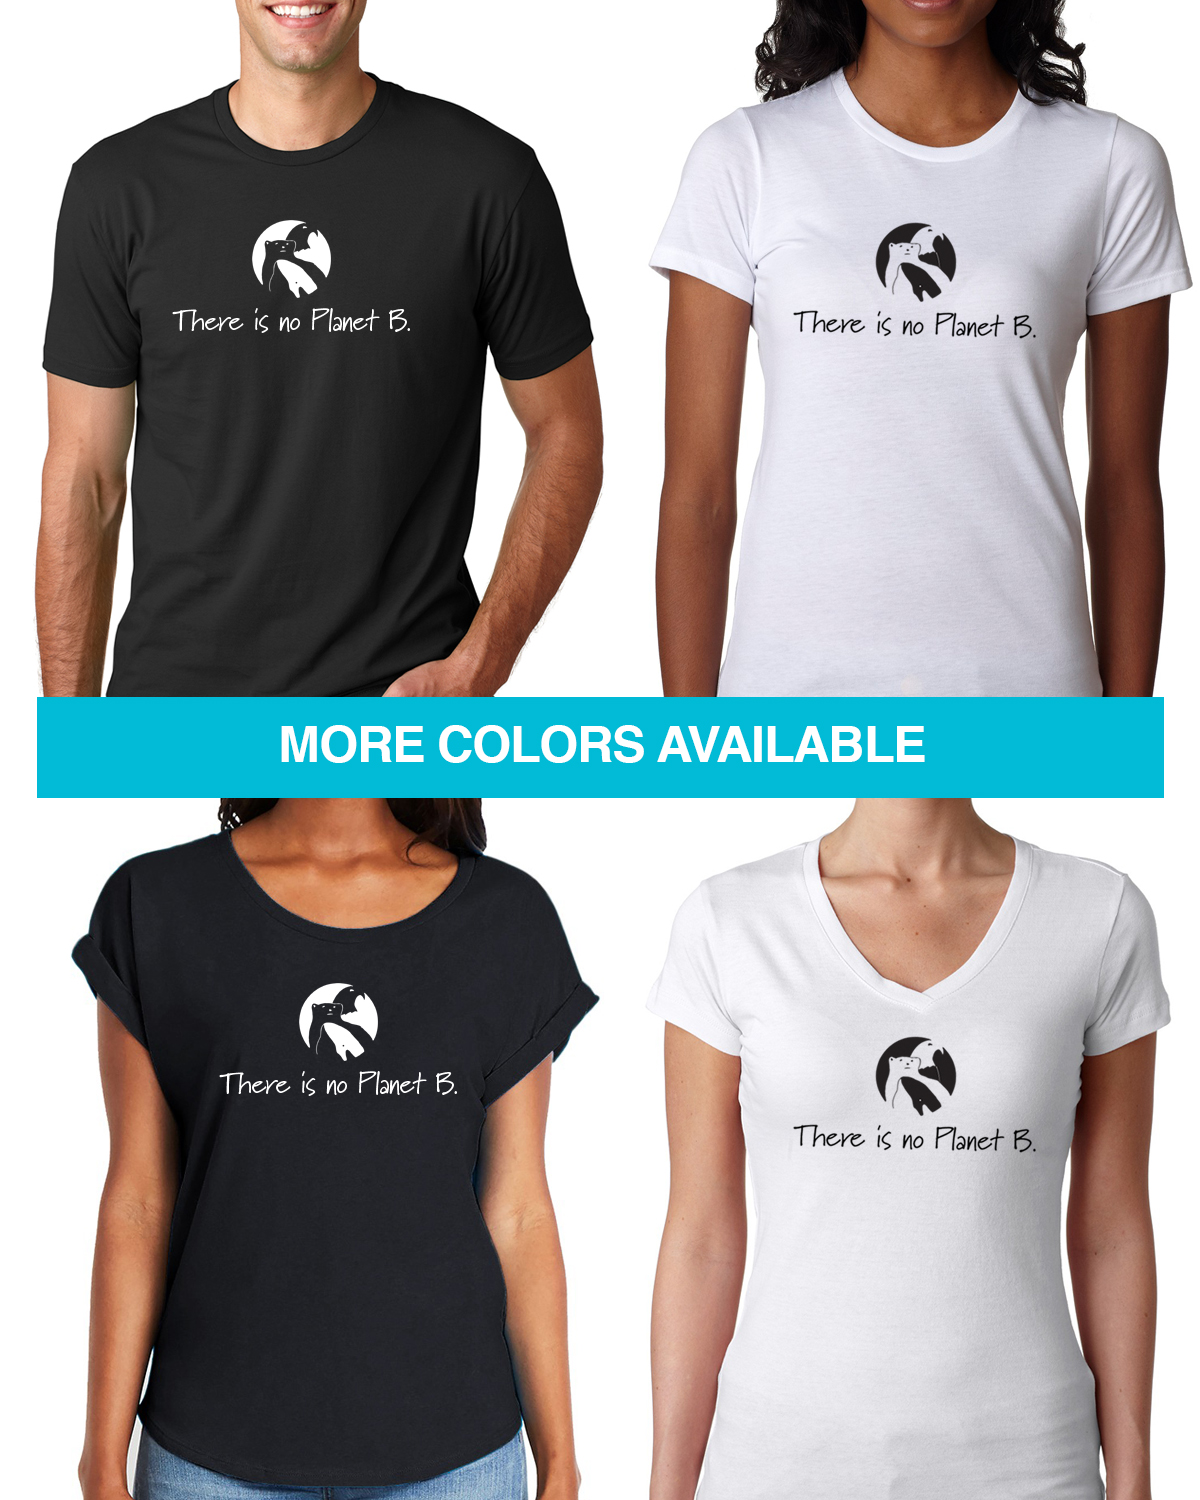 There is No Planet B short sleeve t-shirts for men and women